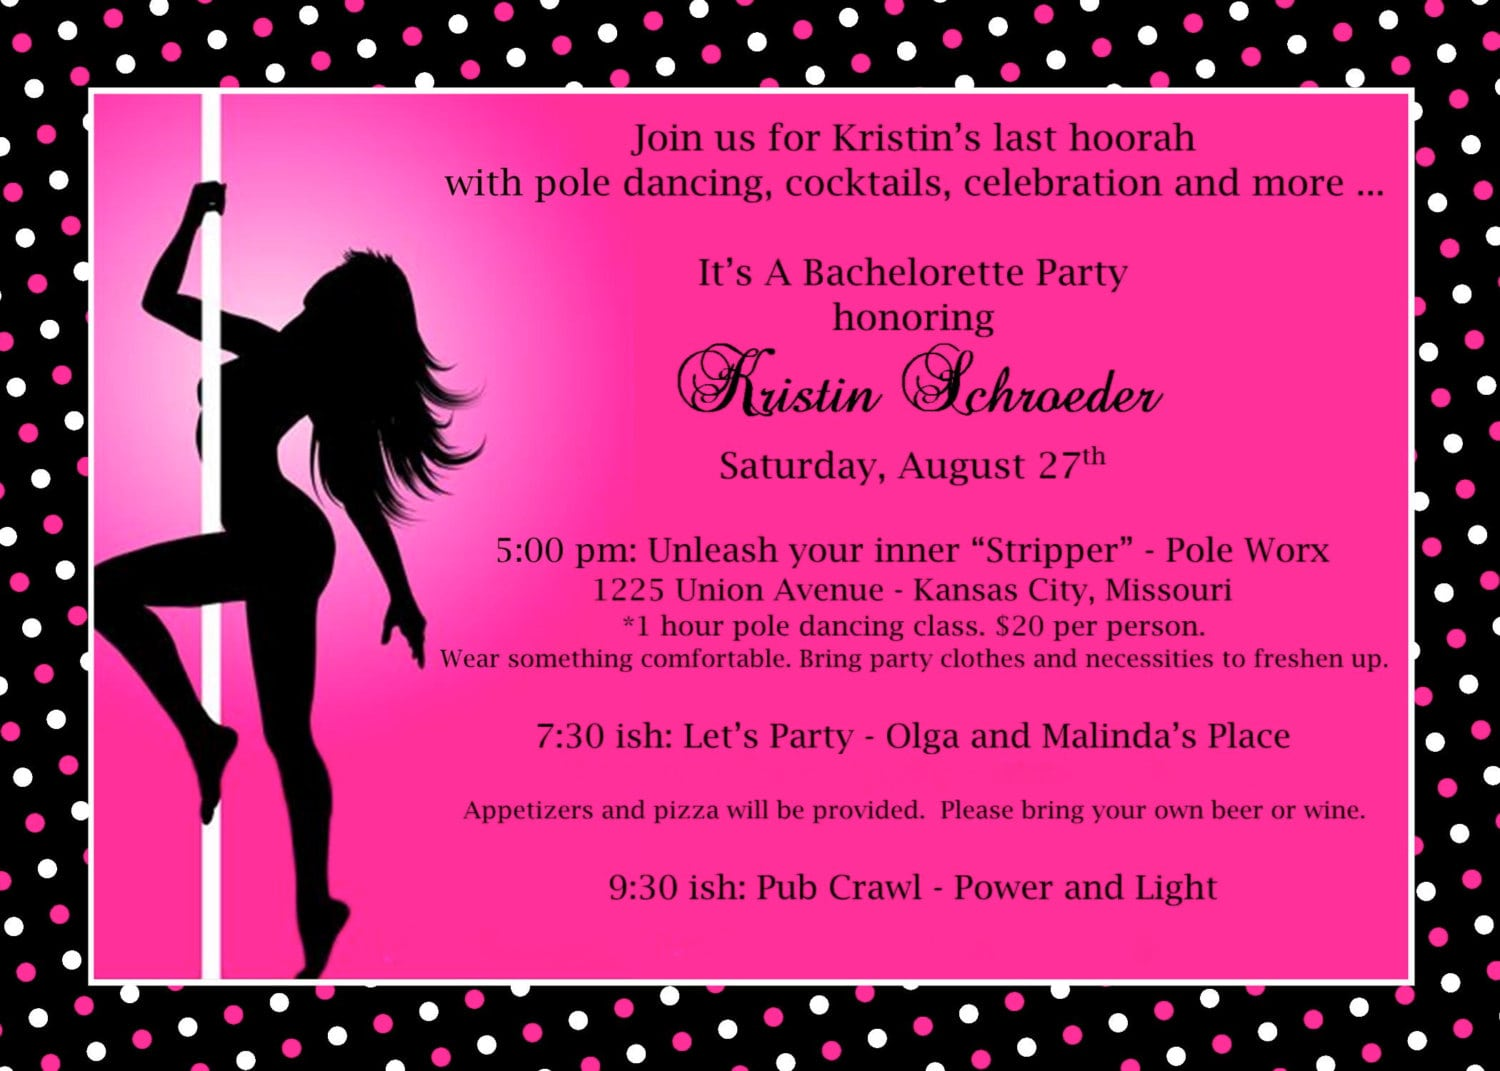 Pole Party Invitations